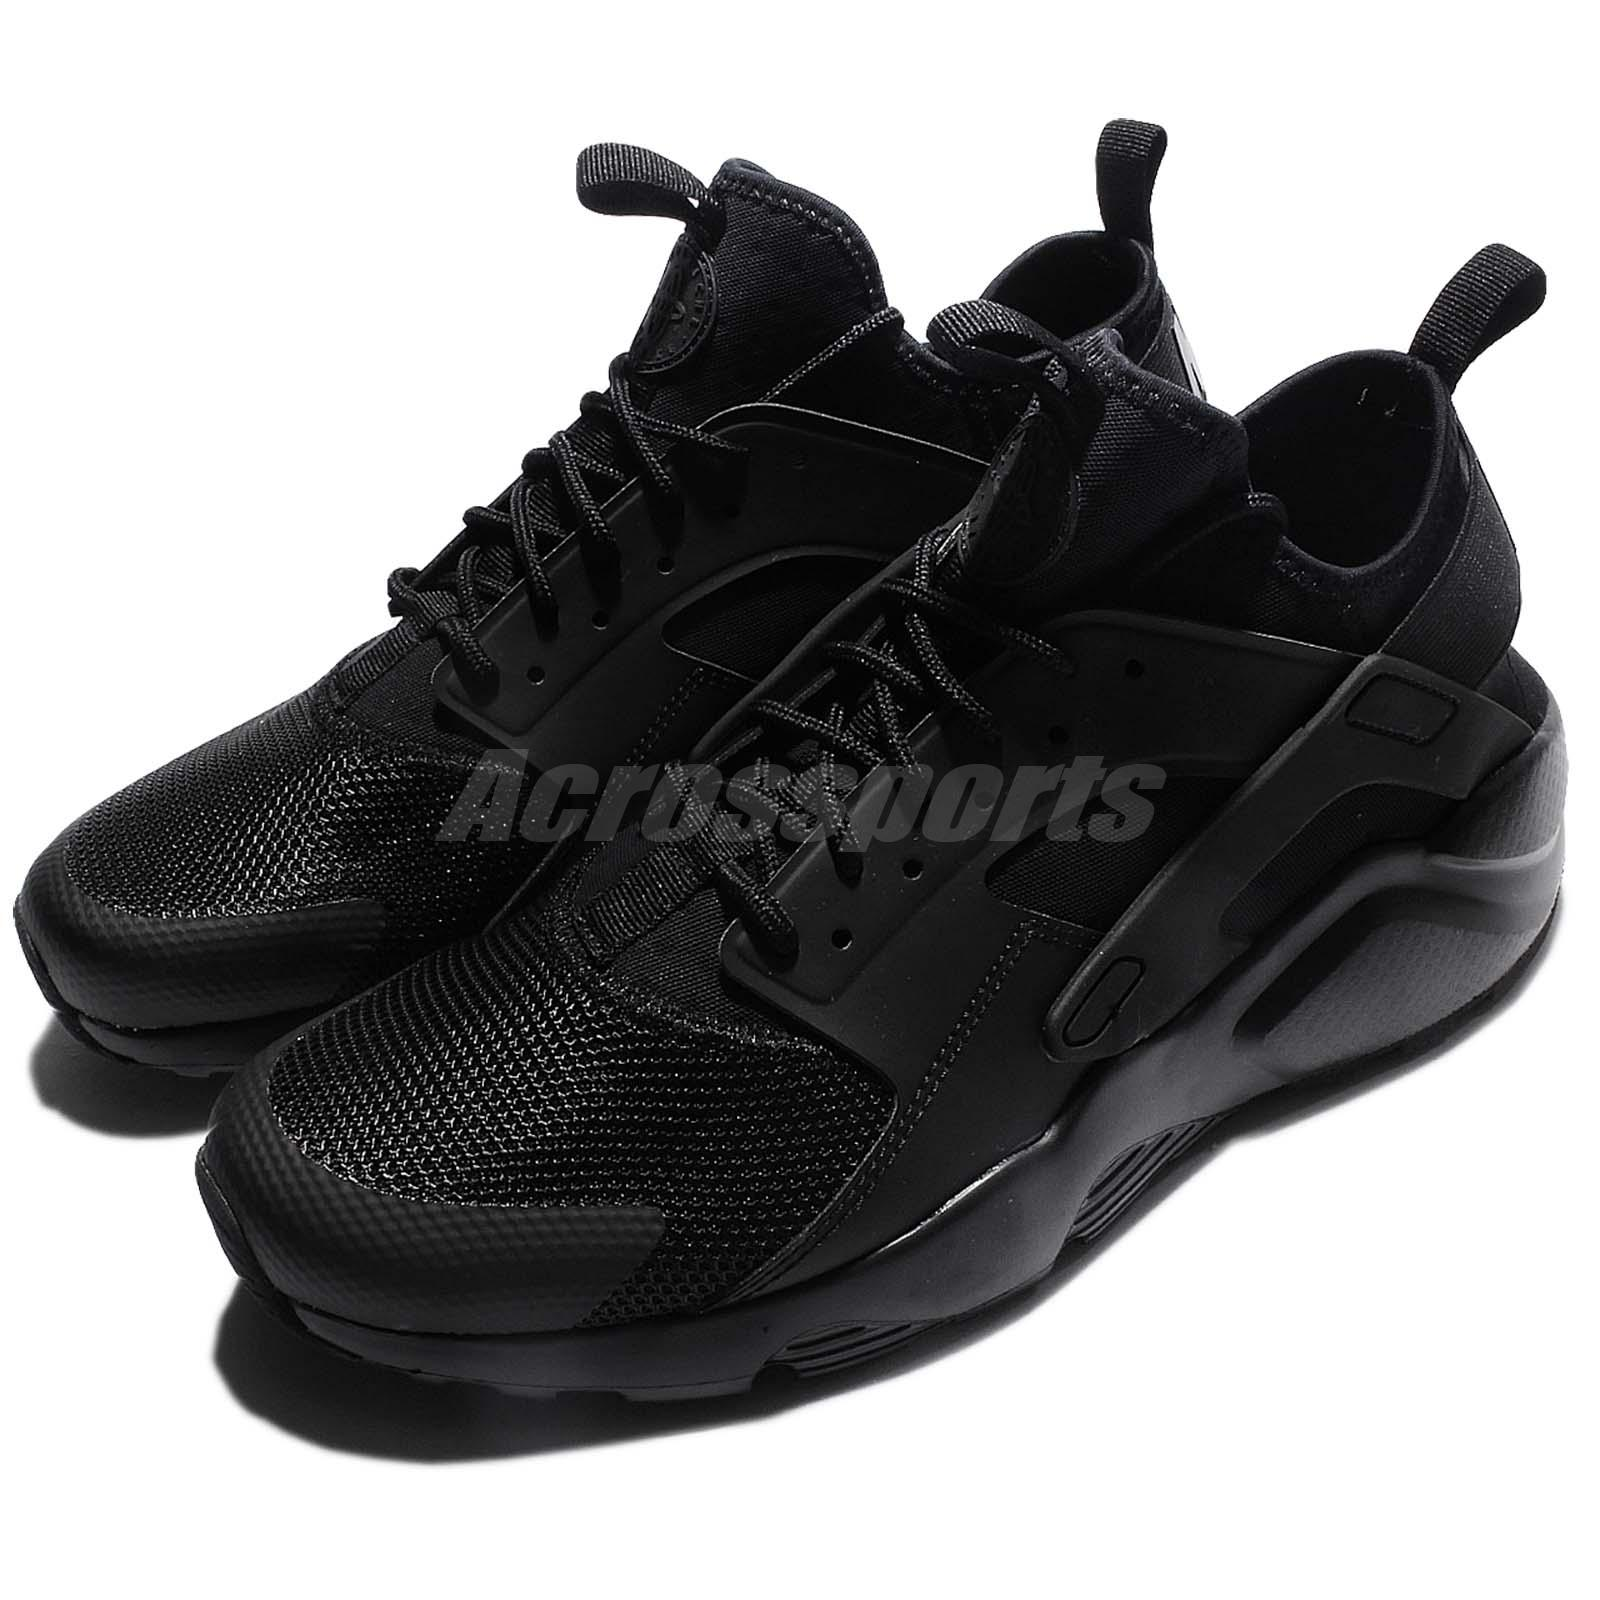 outlet store 52927 e6d9b Details about Nike Air Huarache Run Ultra Triple Black Men Running Shoes  Sneakers 819685-002